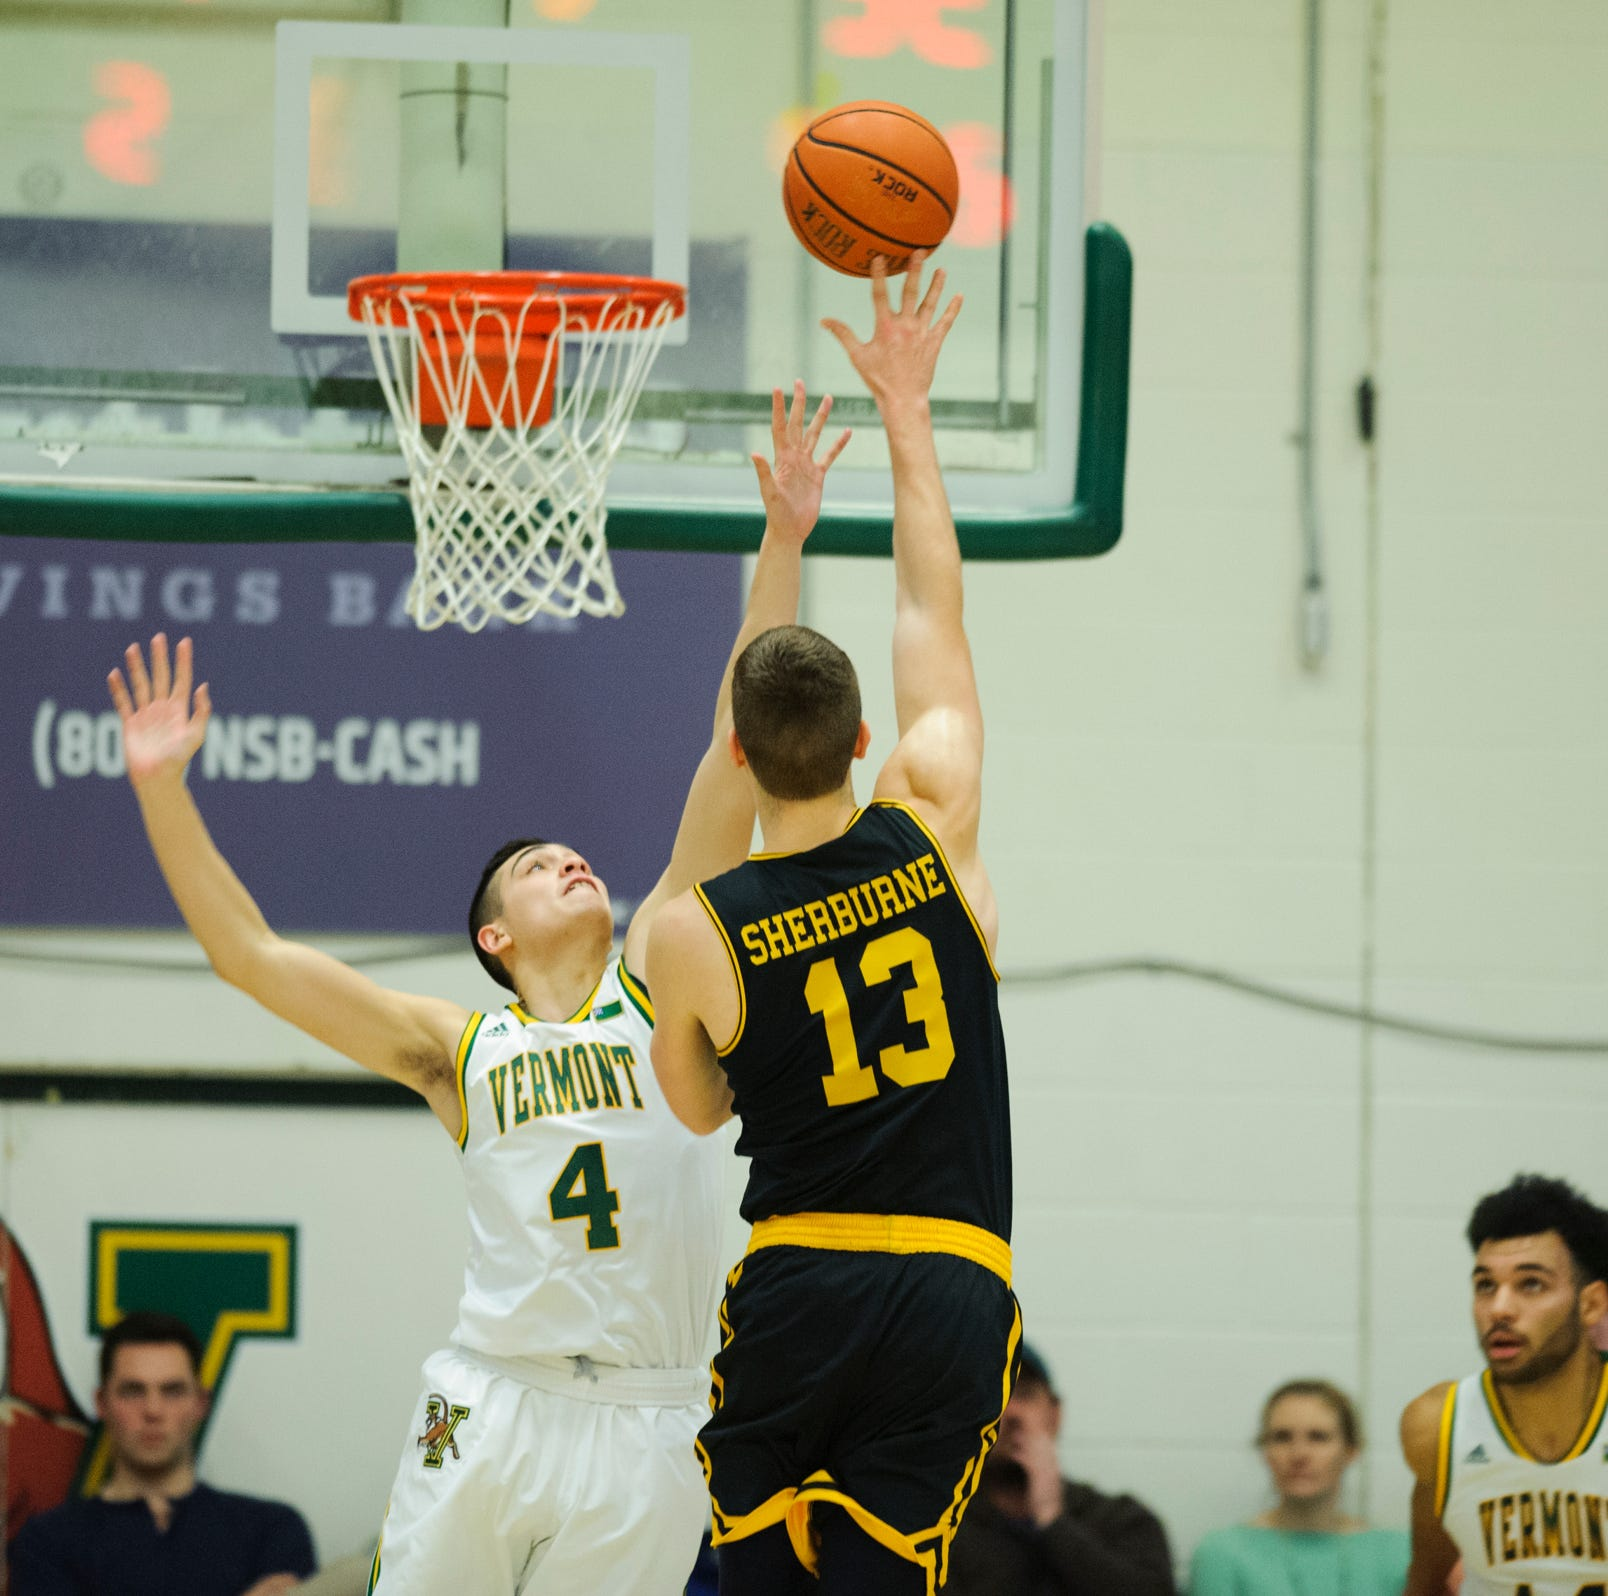 UVM men's basketball: Catamounts 'embarrassed' by UMBC